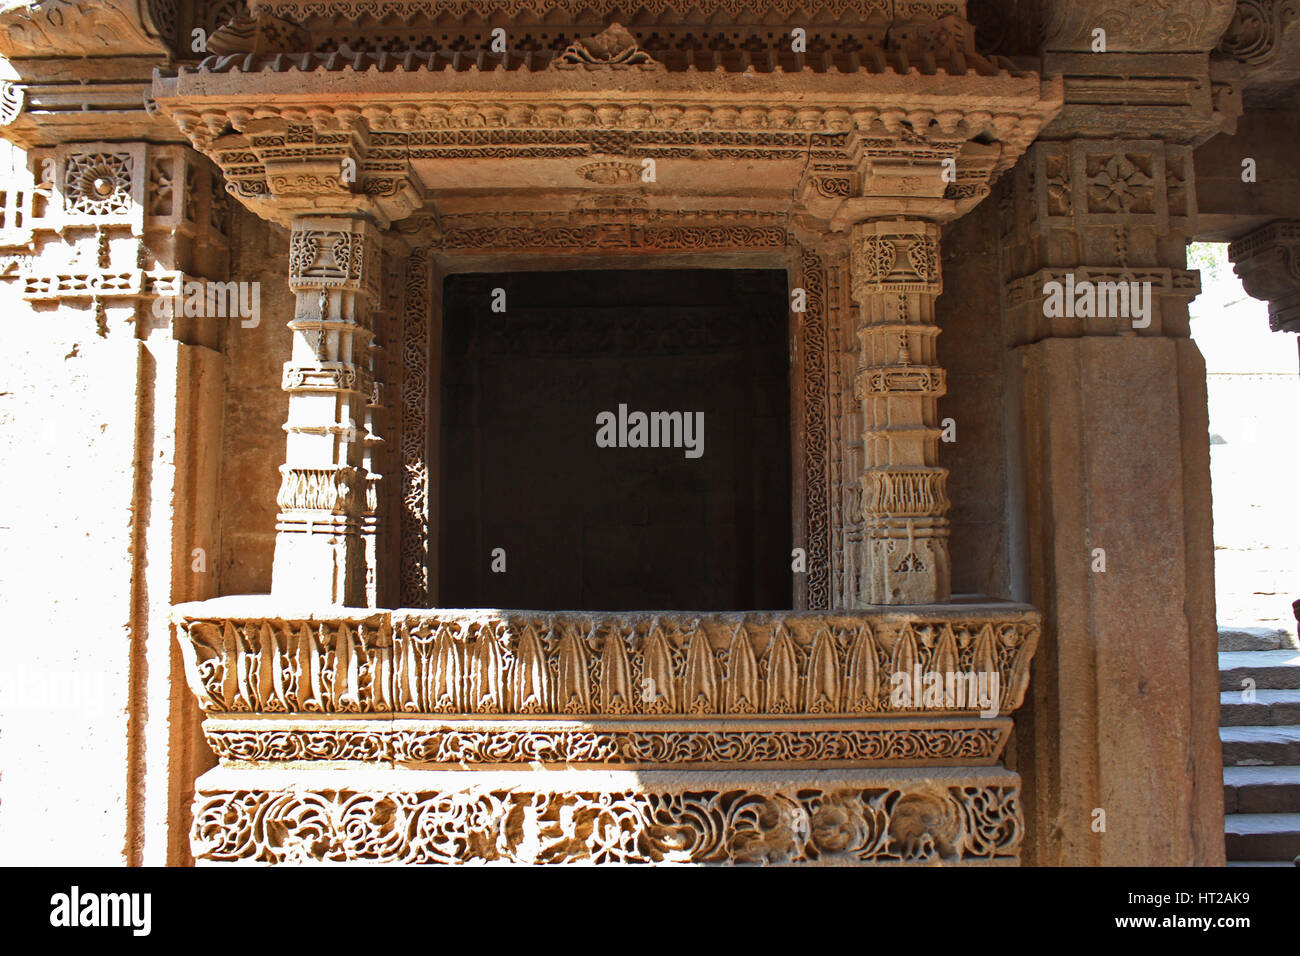 Close up of a balcony with intricate patterns engraved on the borders. Adalaj Stepwell, Ahmedabad, Gujarat, India - Stock Image